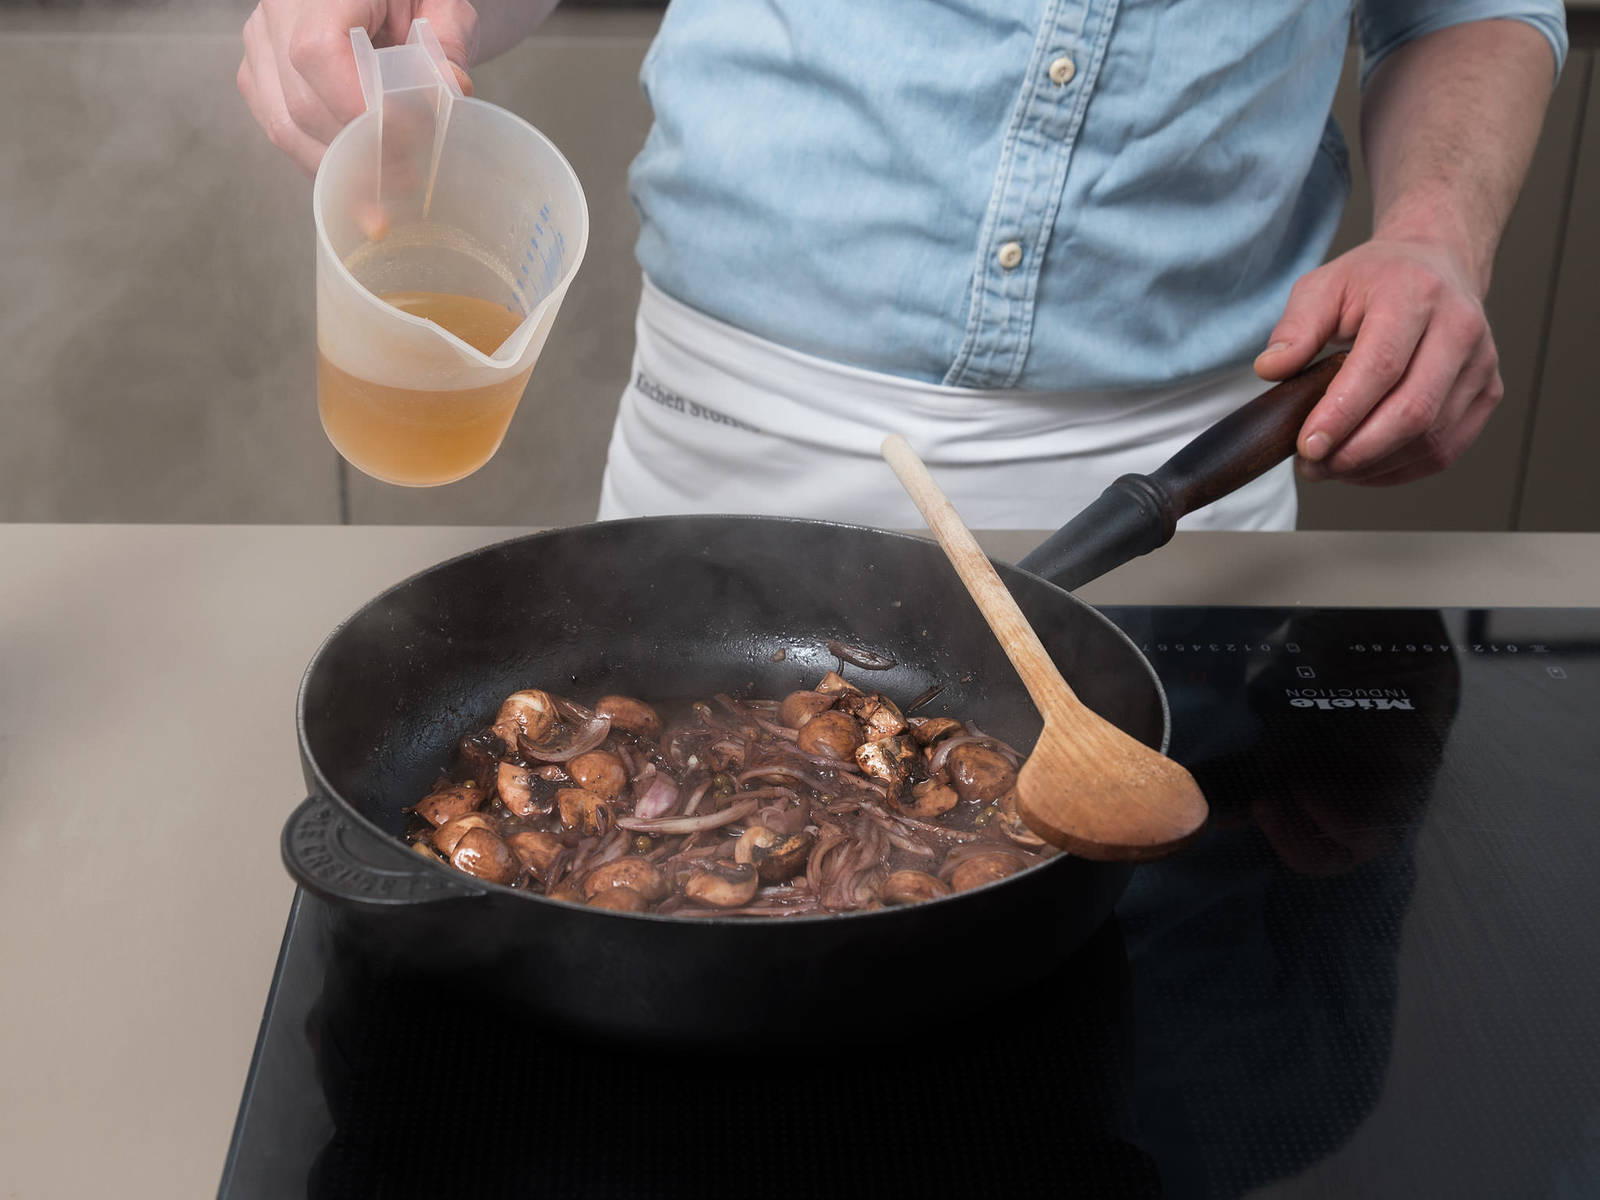 Add the remaining olive oil to the pan and fry peppercorns, shallots, and mushrooms. Deglaze the pan with red wine and let simmer for approx. 1 min. Add beef stock and reduce for approx. 3 min.